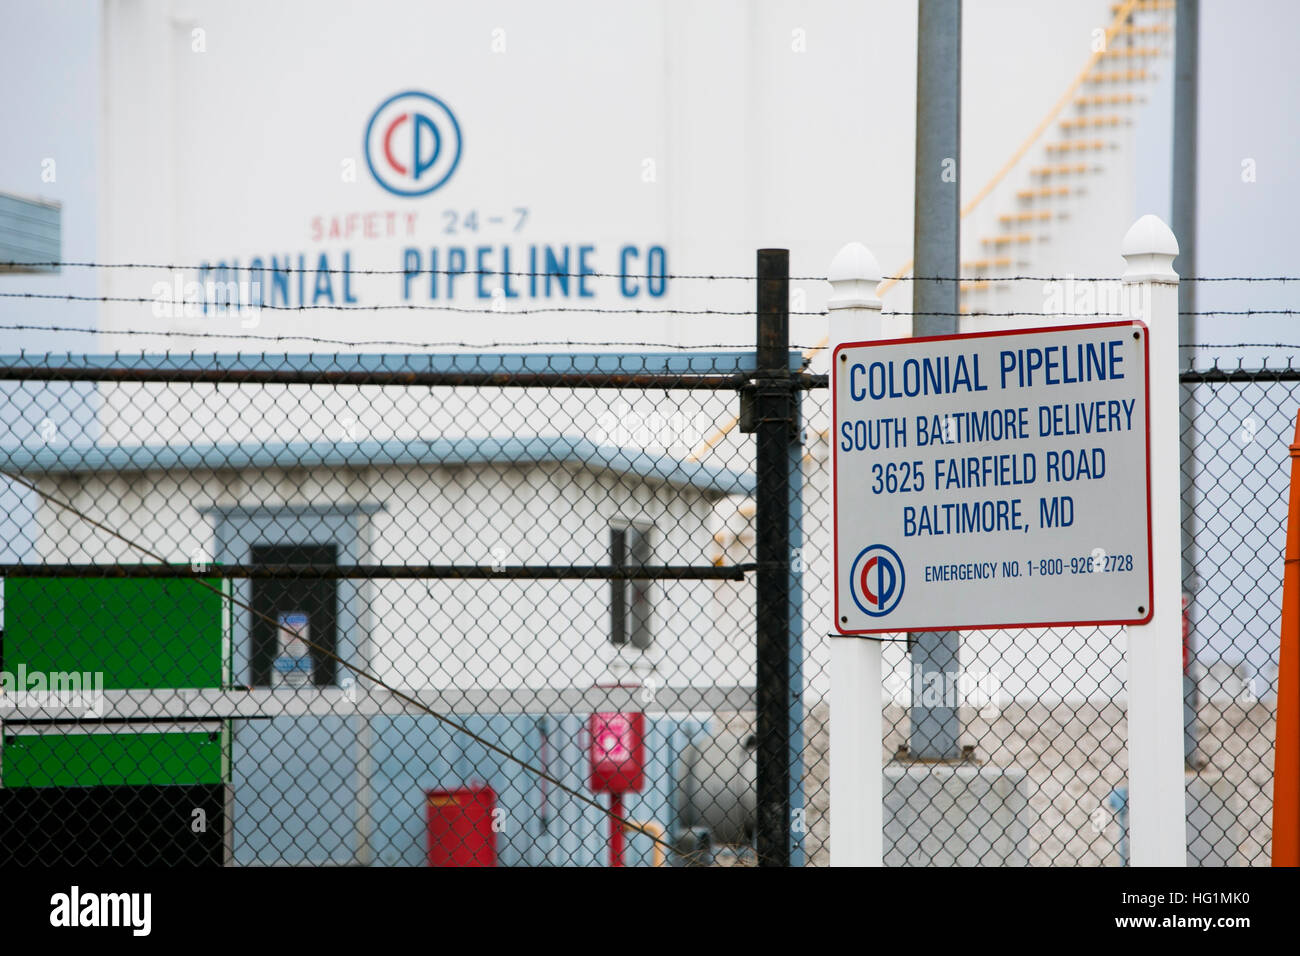 A logo sign outside of a Colonial Pipeline Company facility in Baltimore, Maryland on December 11, 2016. - Stock Image